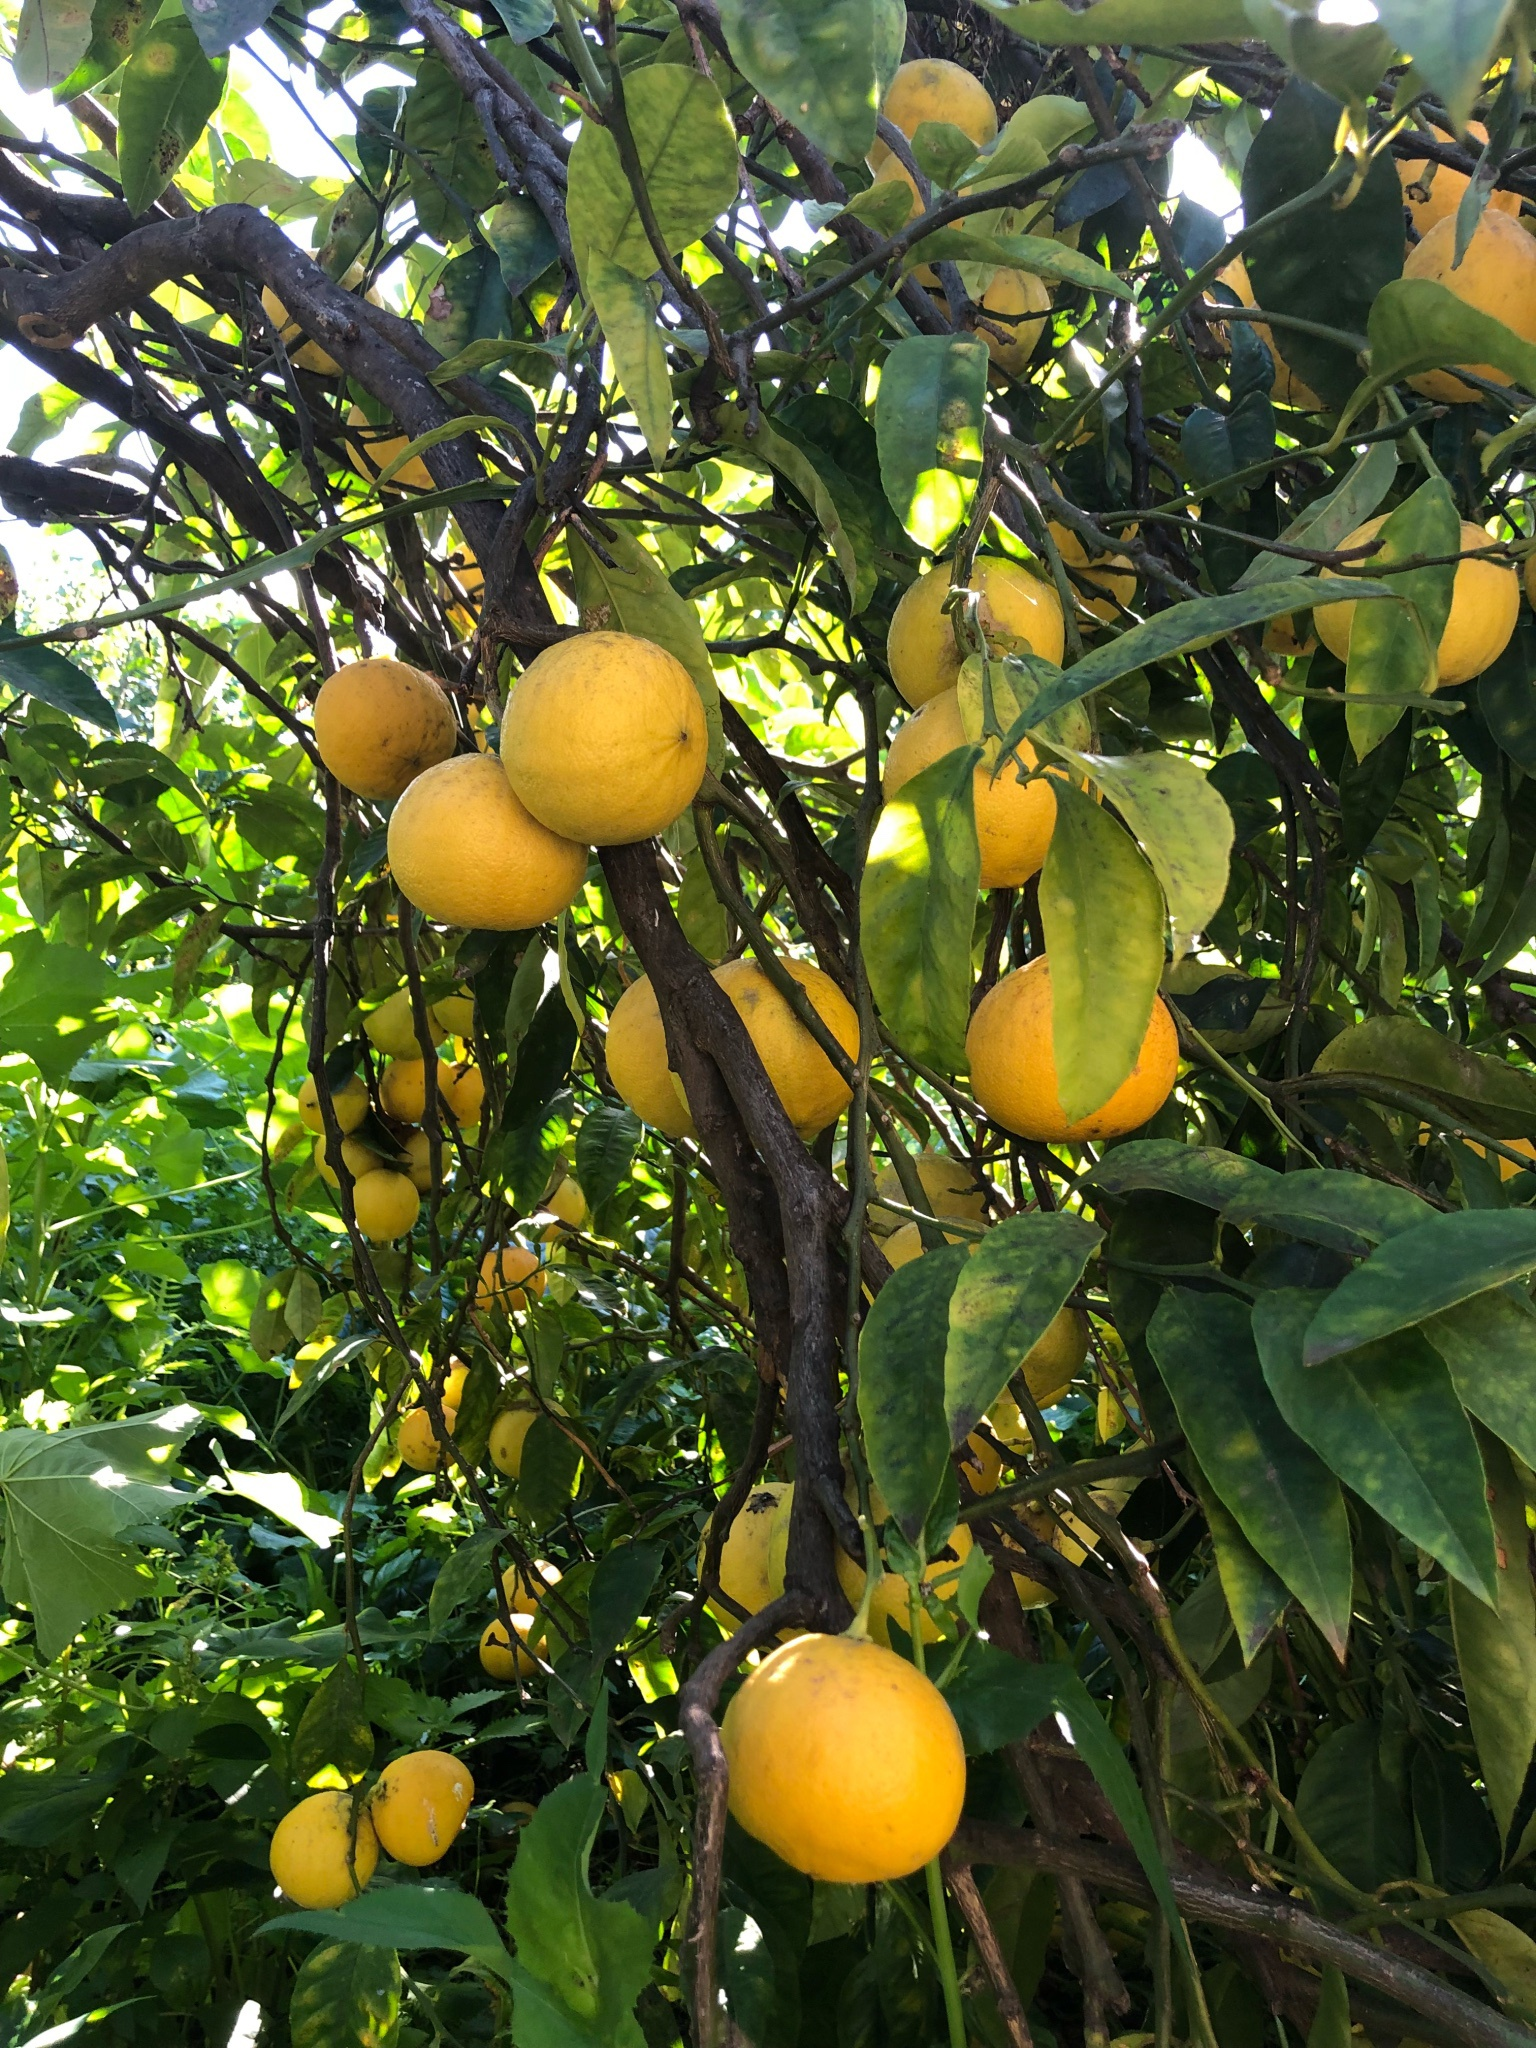 Photo credit: Alan Brown, Owner/CSO, on a visit to a lemon grower's groves in Italy